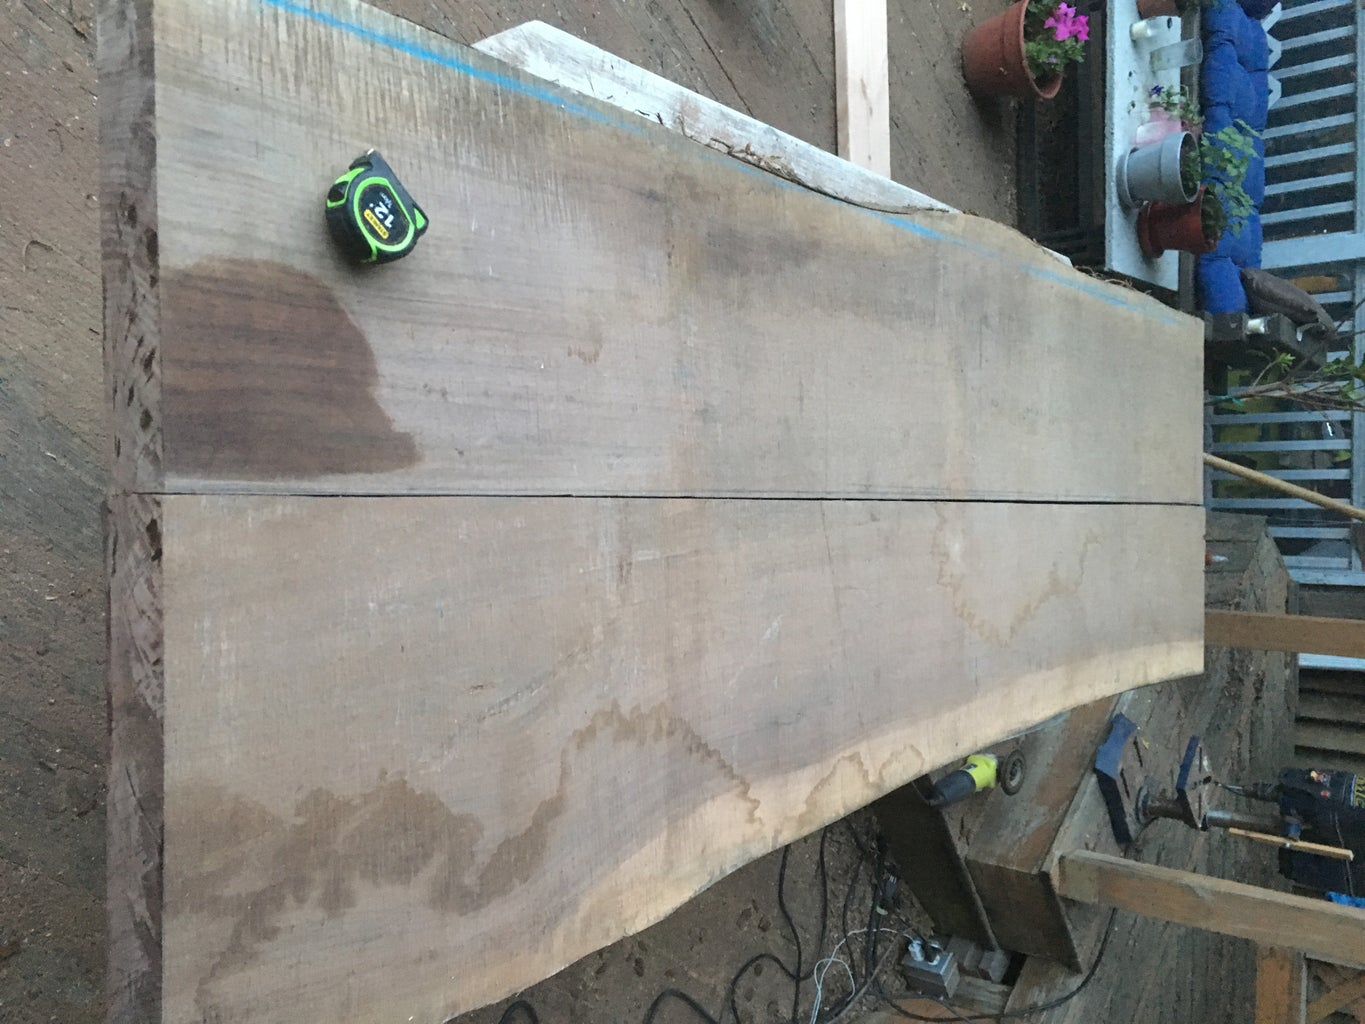 The Top: Rough Cutting and Dimensioning